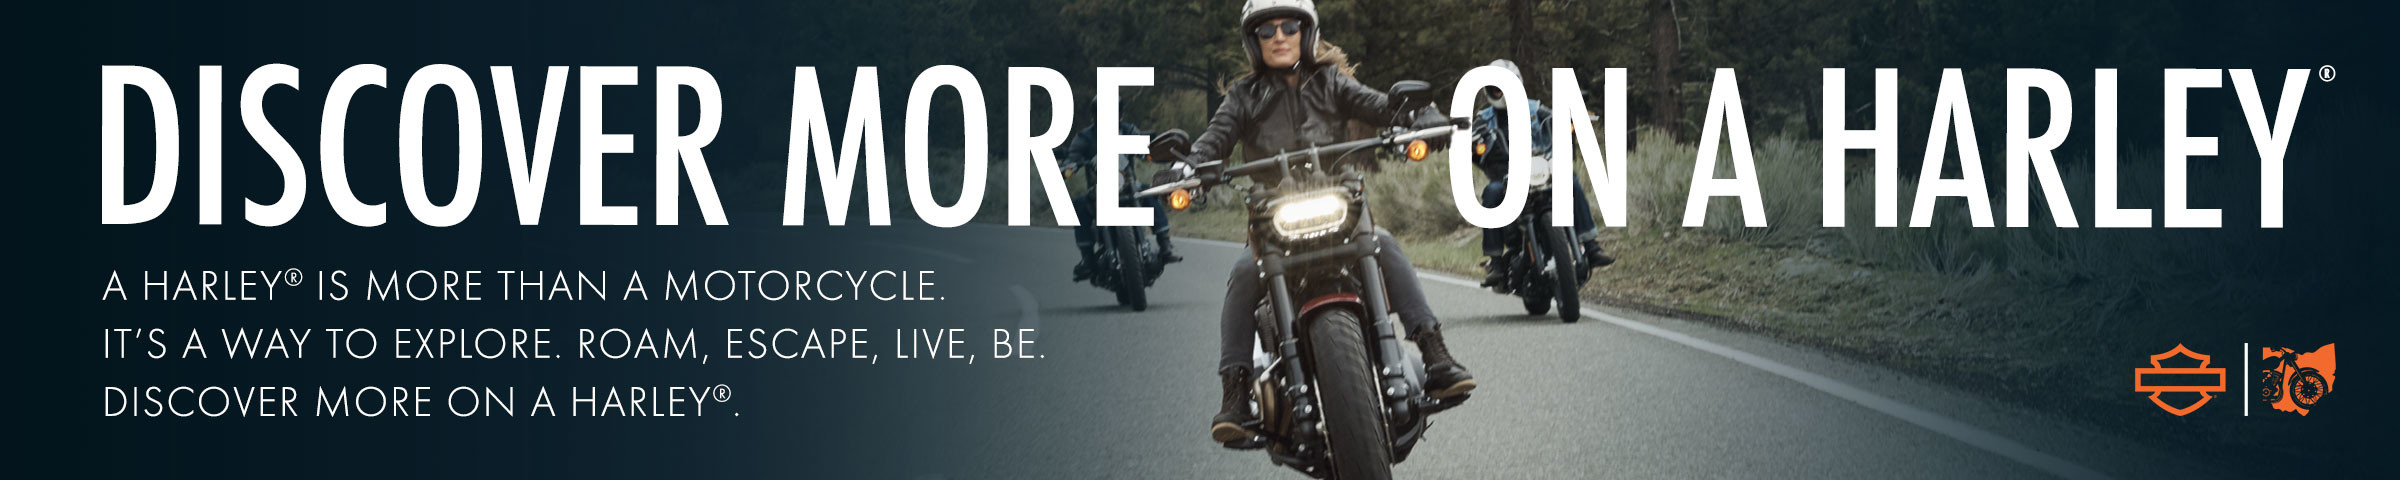 Pre-Owned Inventory at Adventure Harley-Davidson®